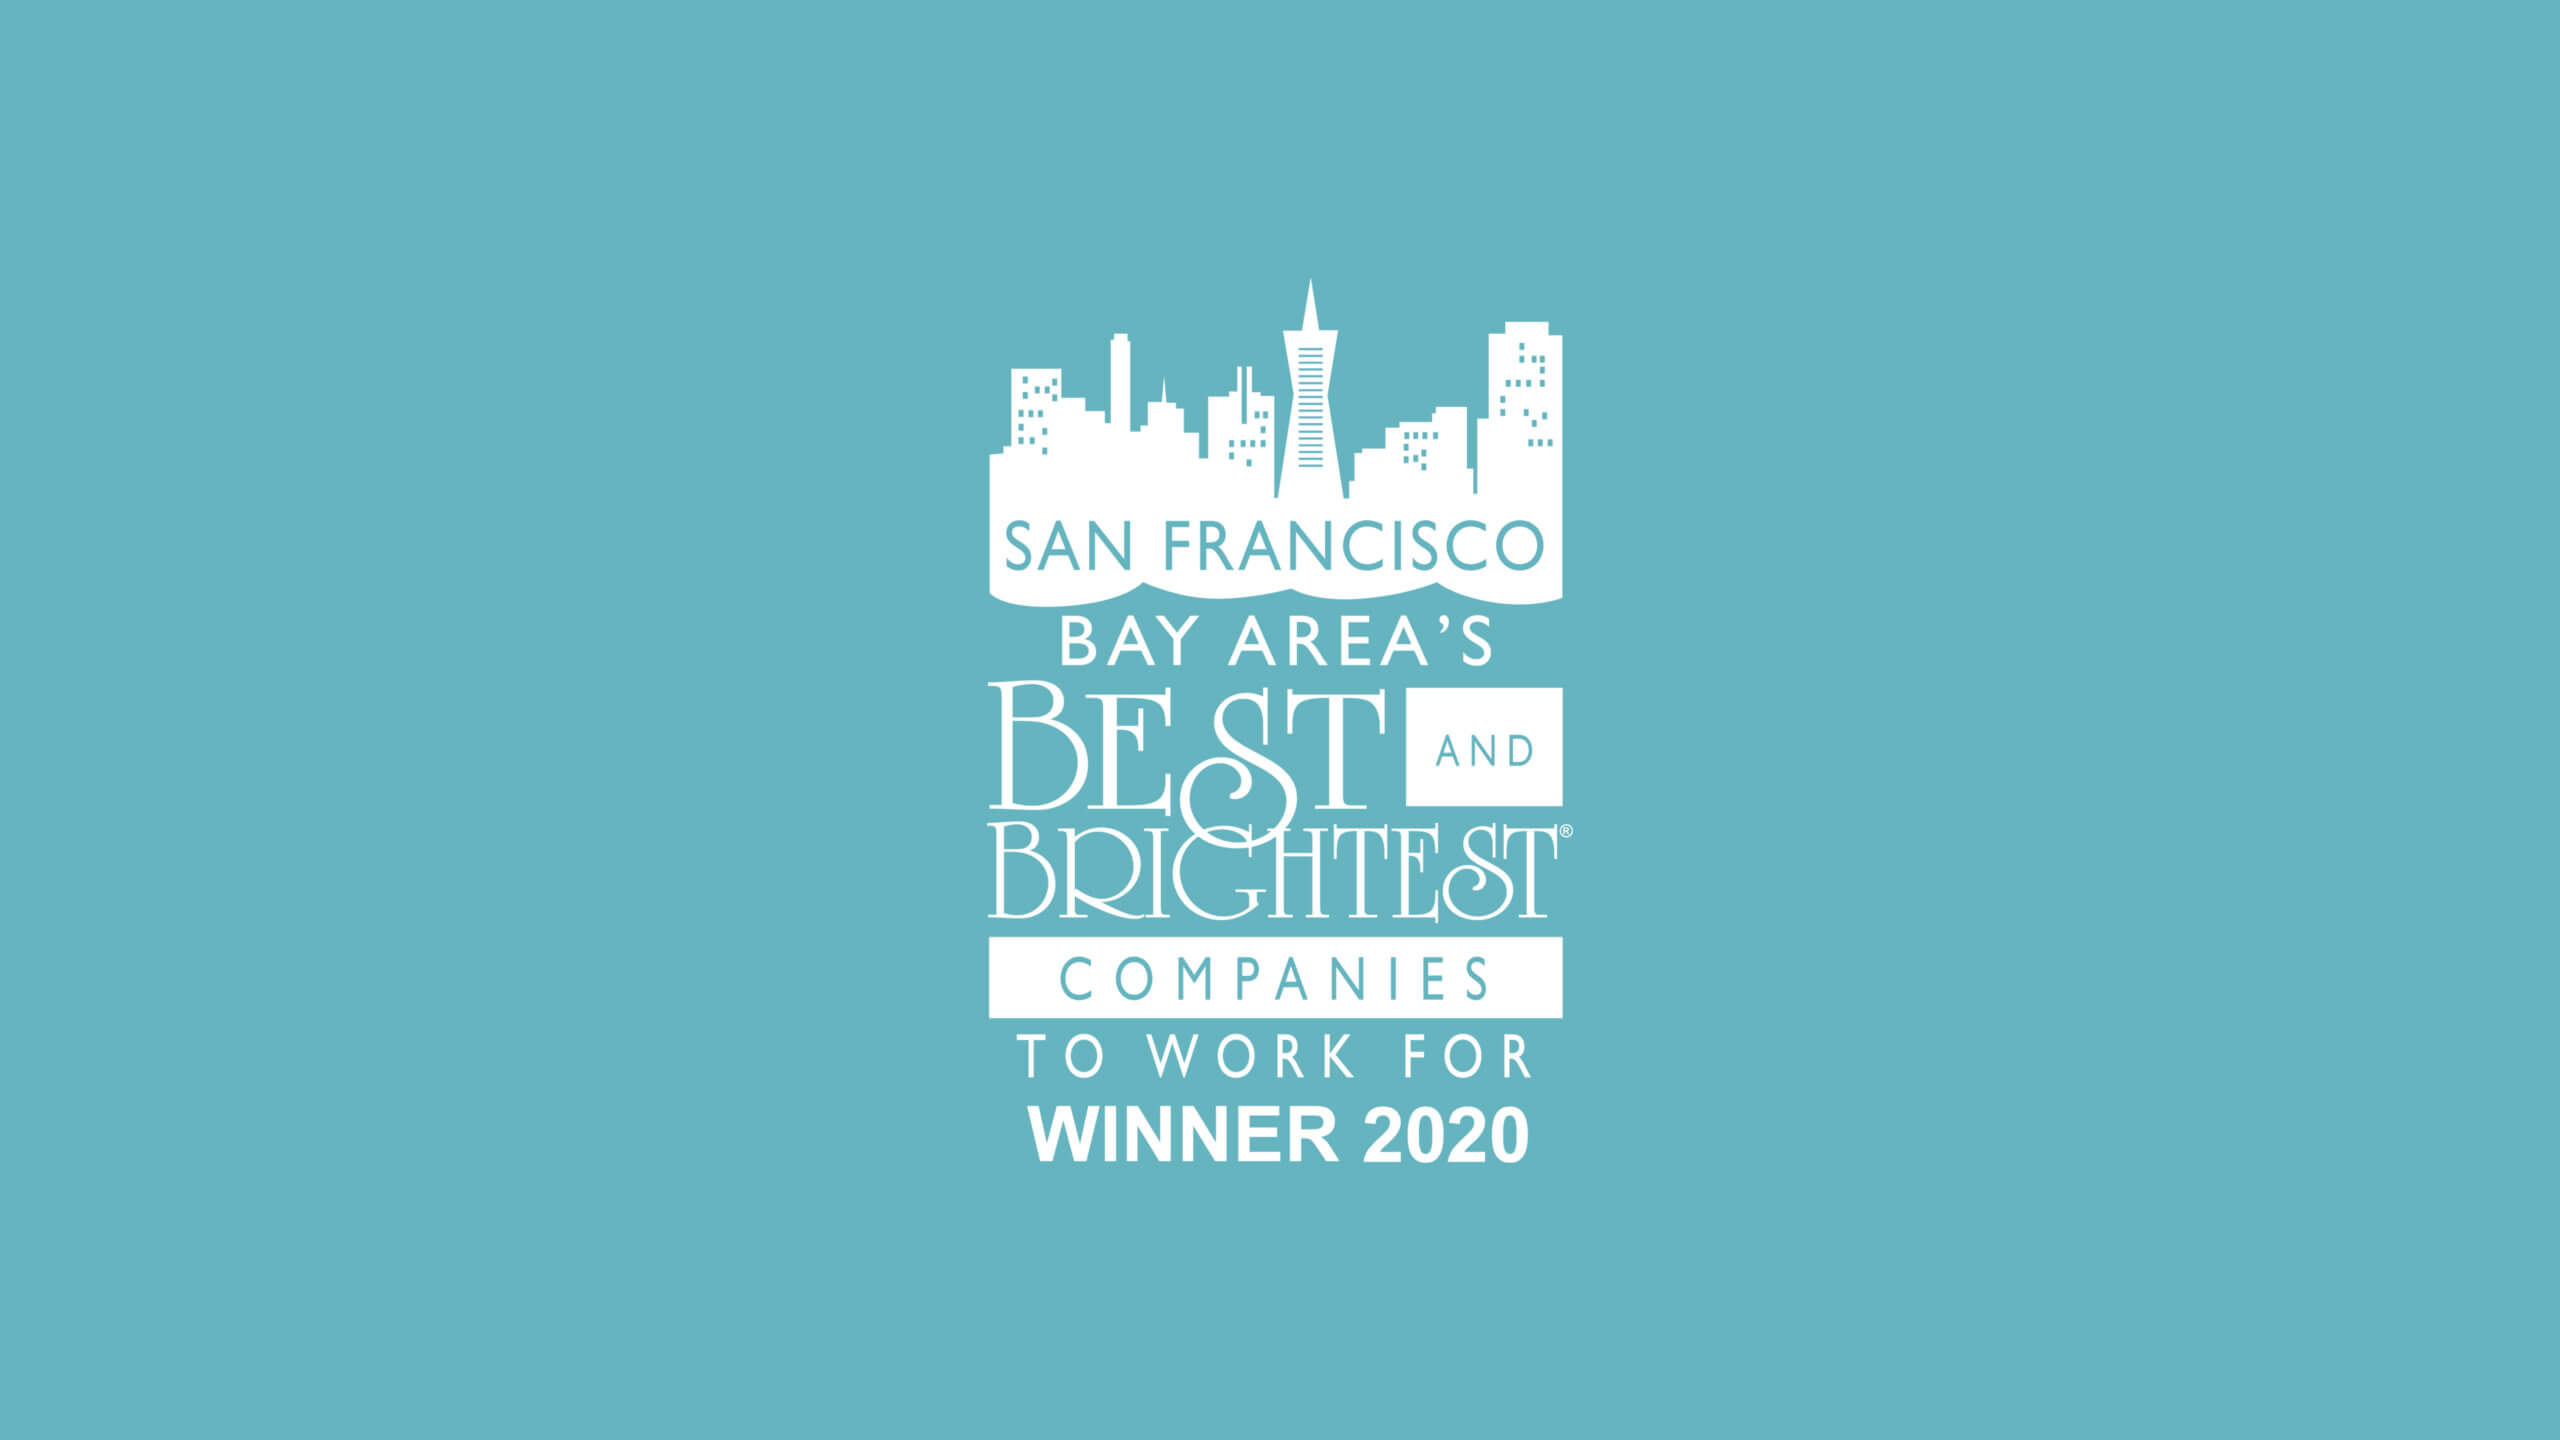 San Francisco Bay Area's Best and Brightest Companies to Work For